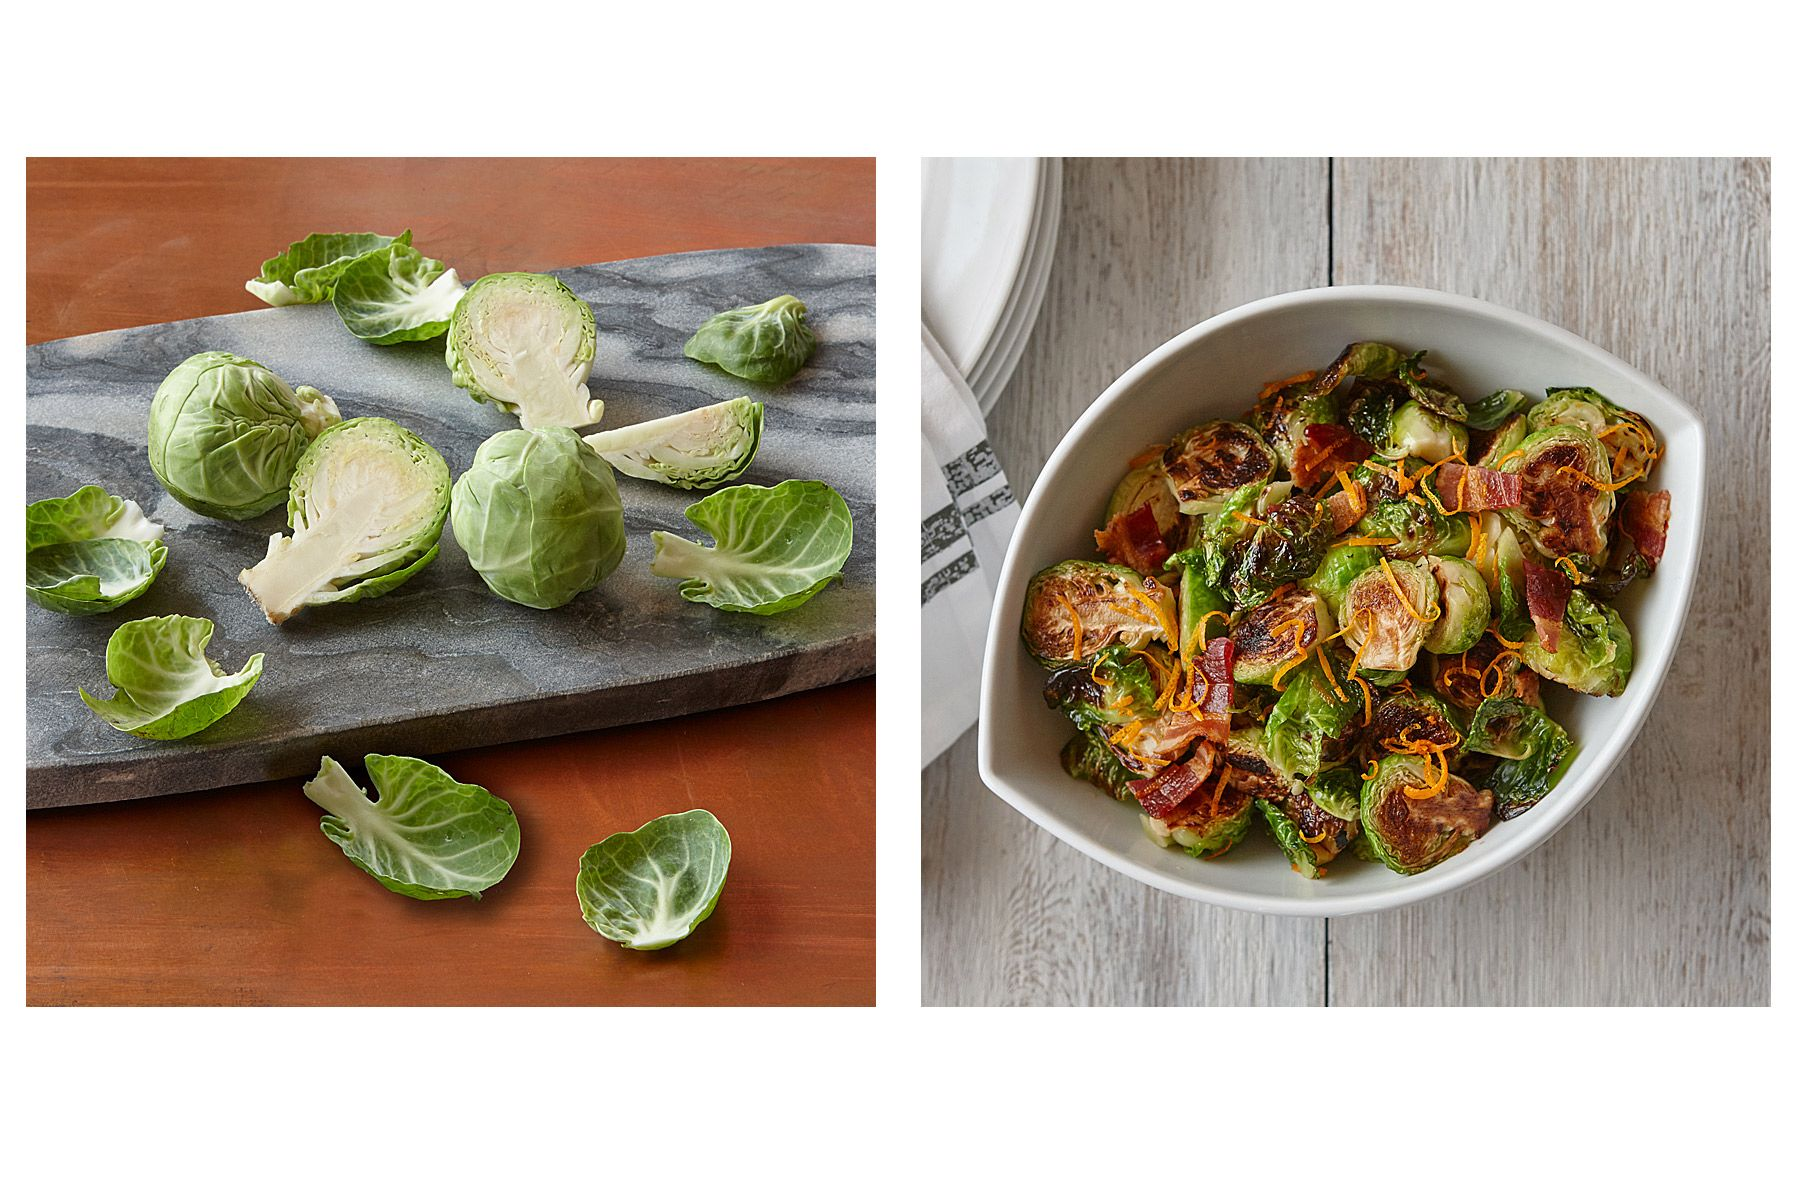 Sprouts-2-Images.jpg